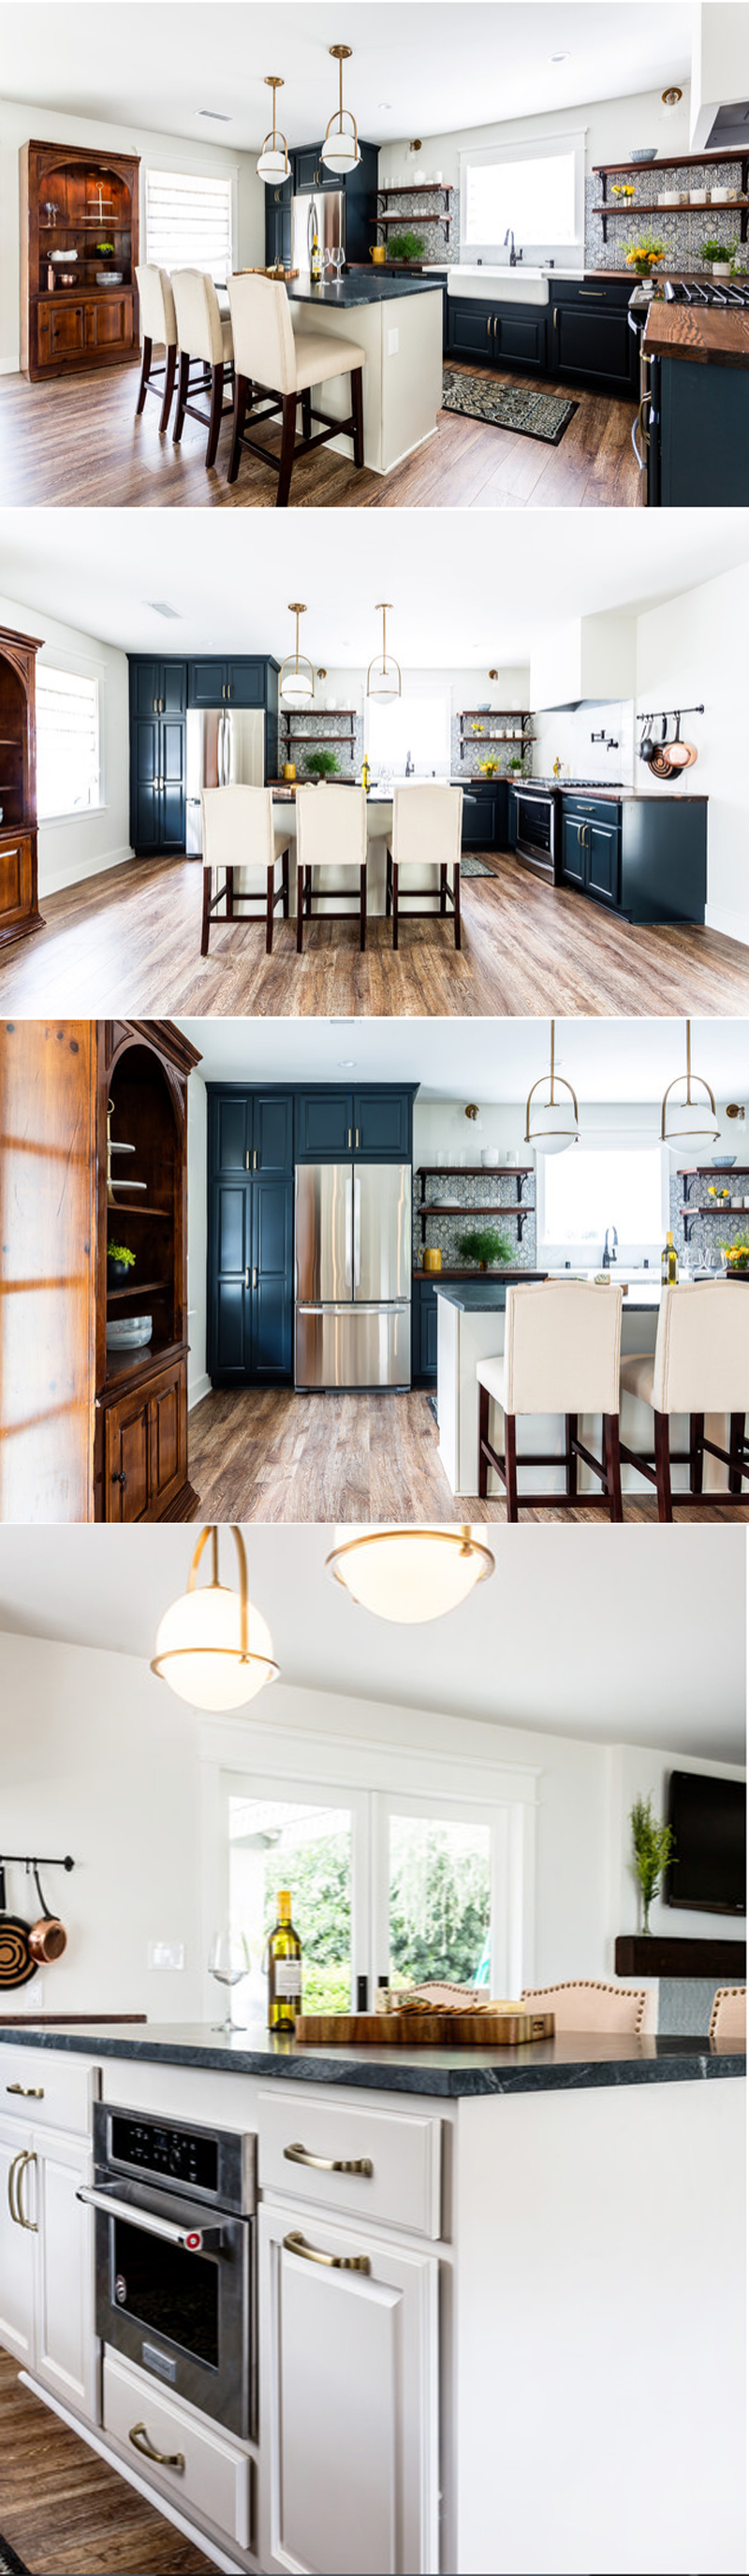 how to transition to farmhouse style